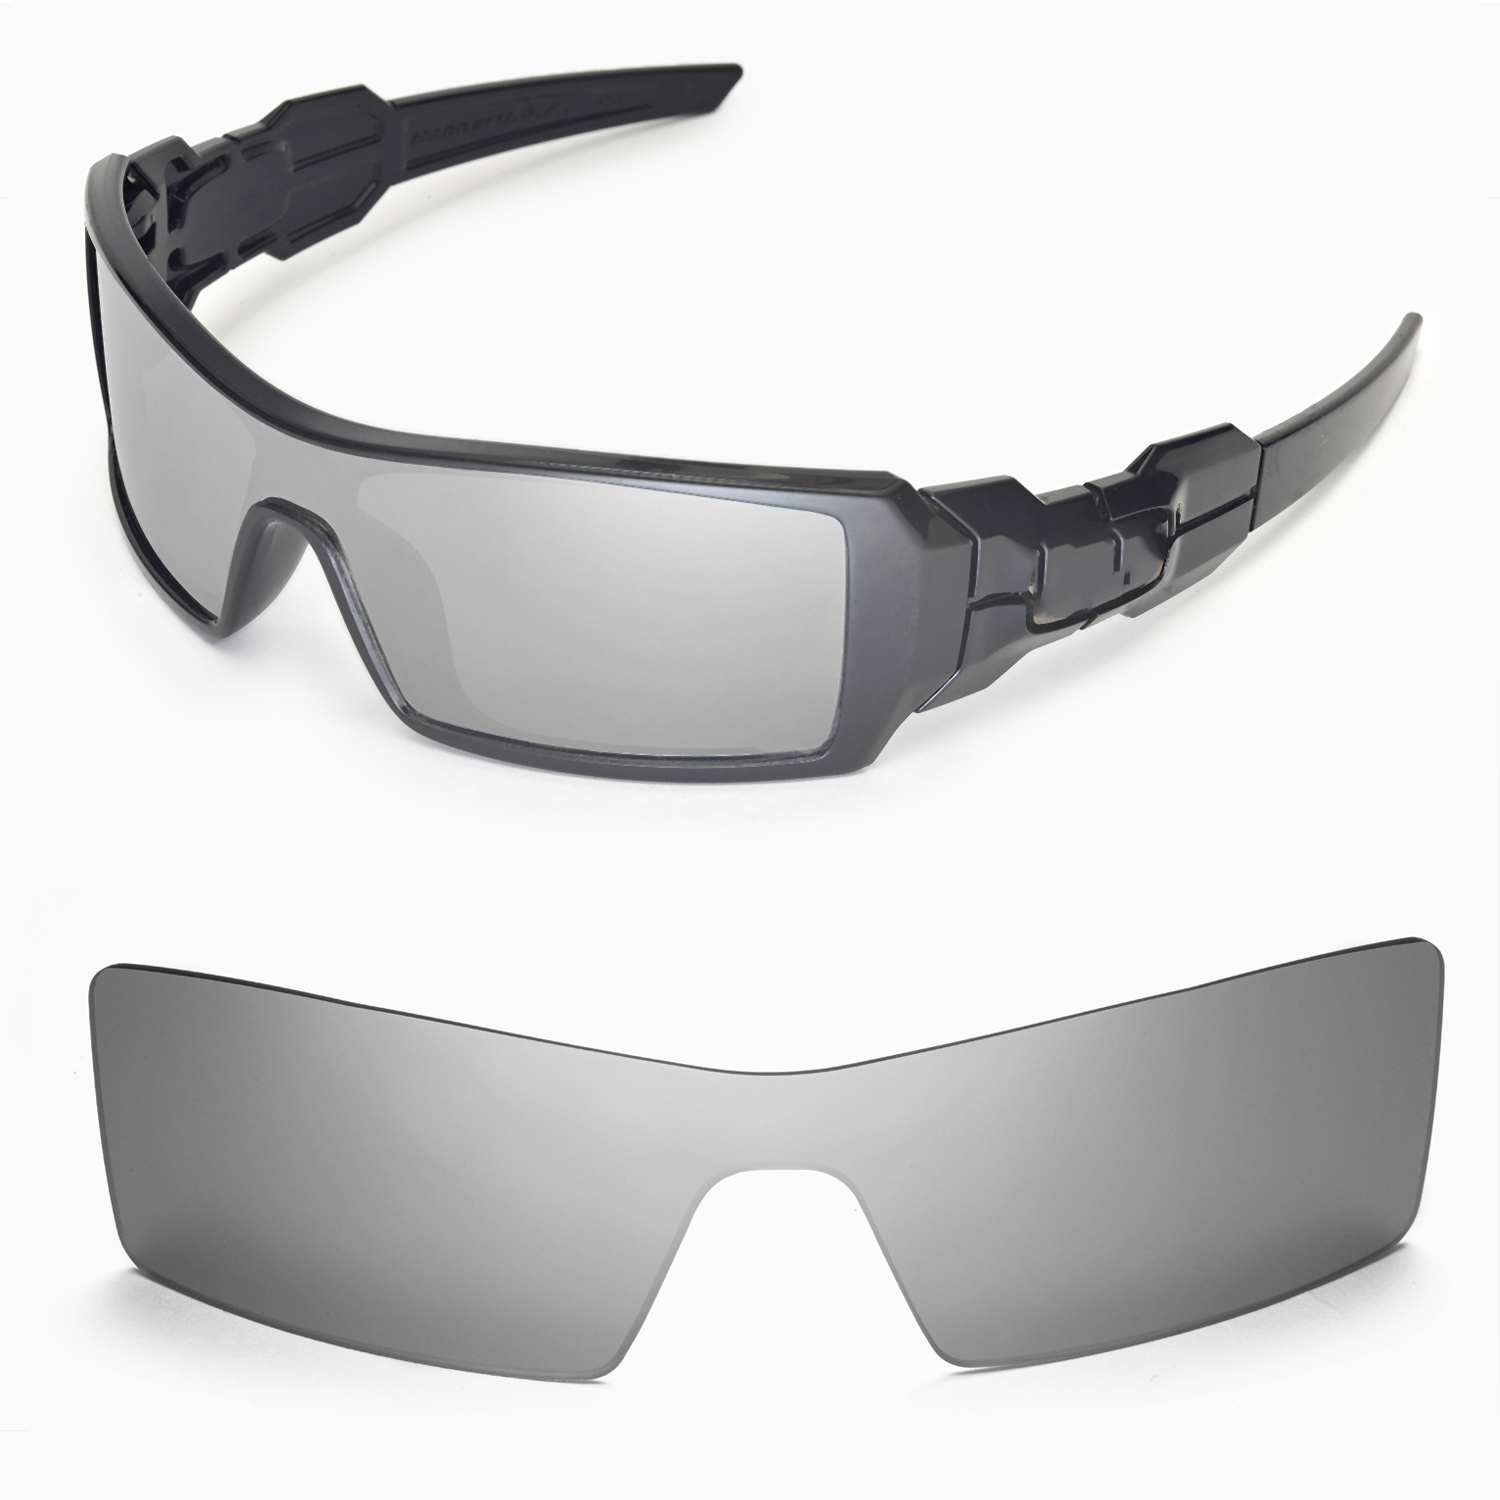 f29010ee57740 Details about New Walleva Titanium Lenses For Oakley Oil Rig Sunglasses